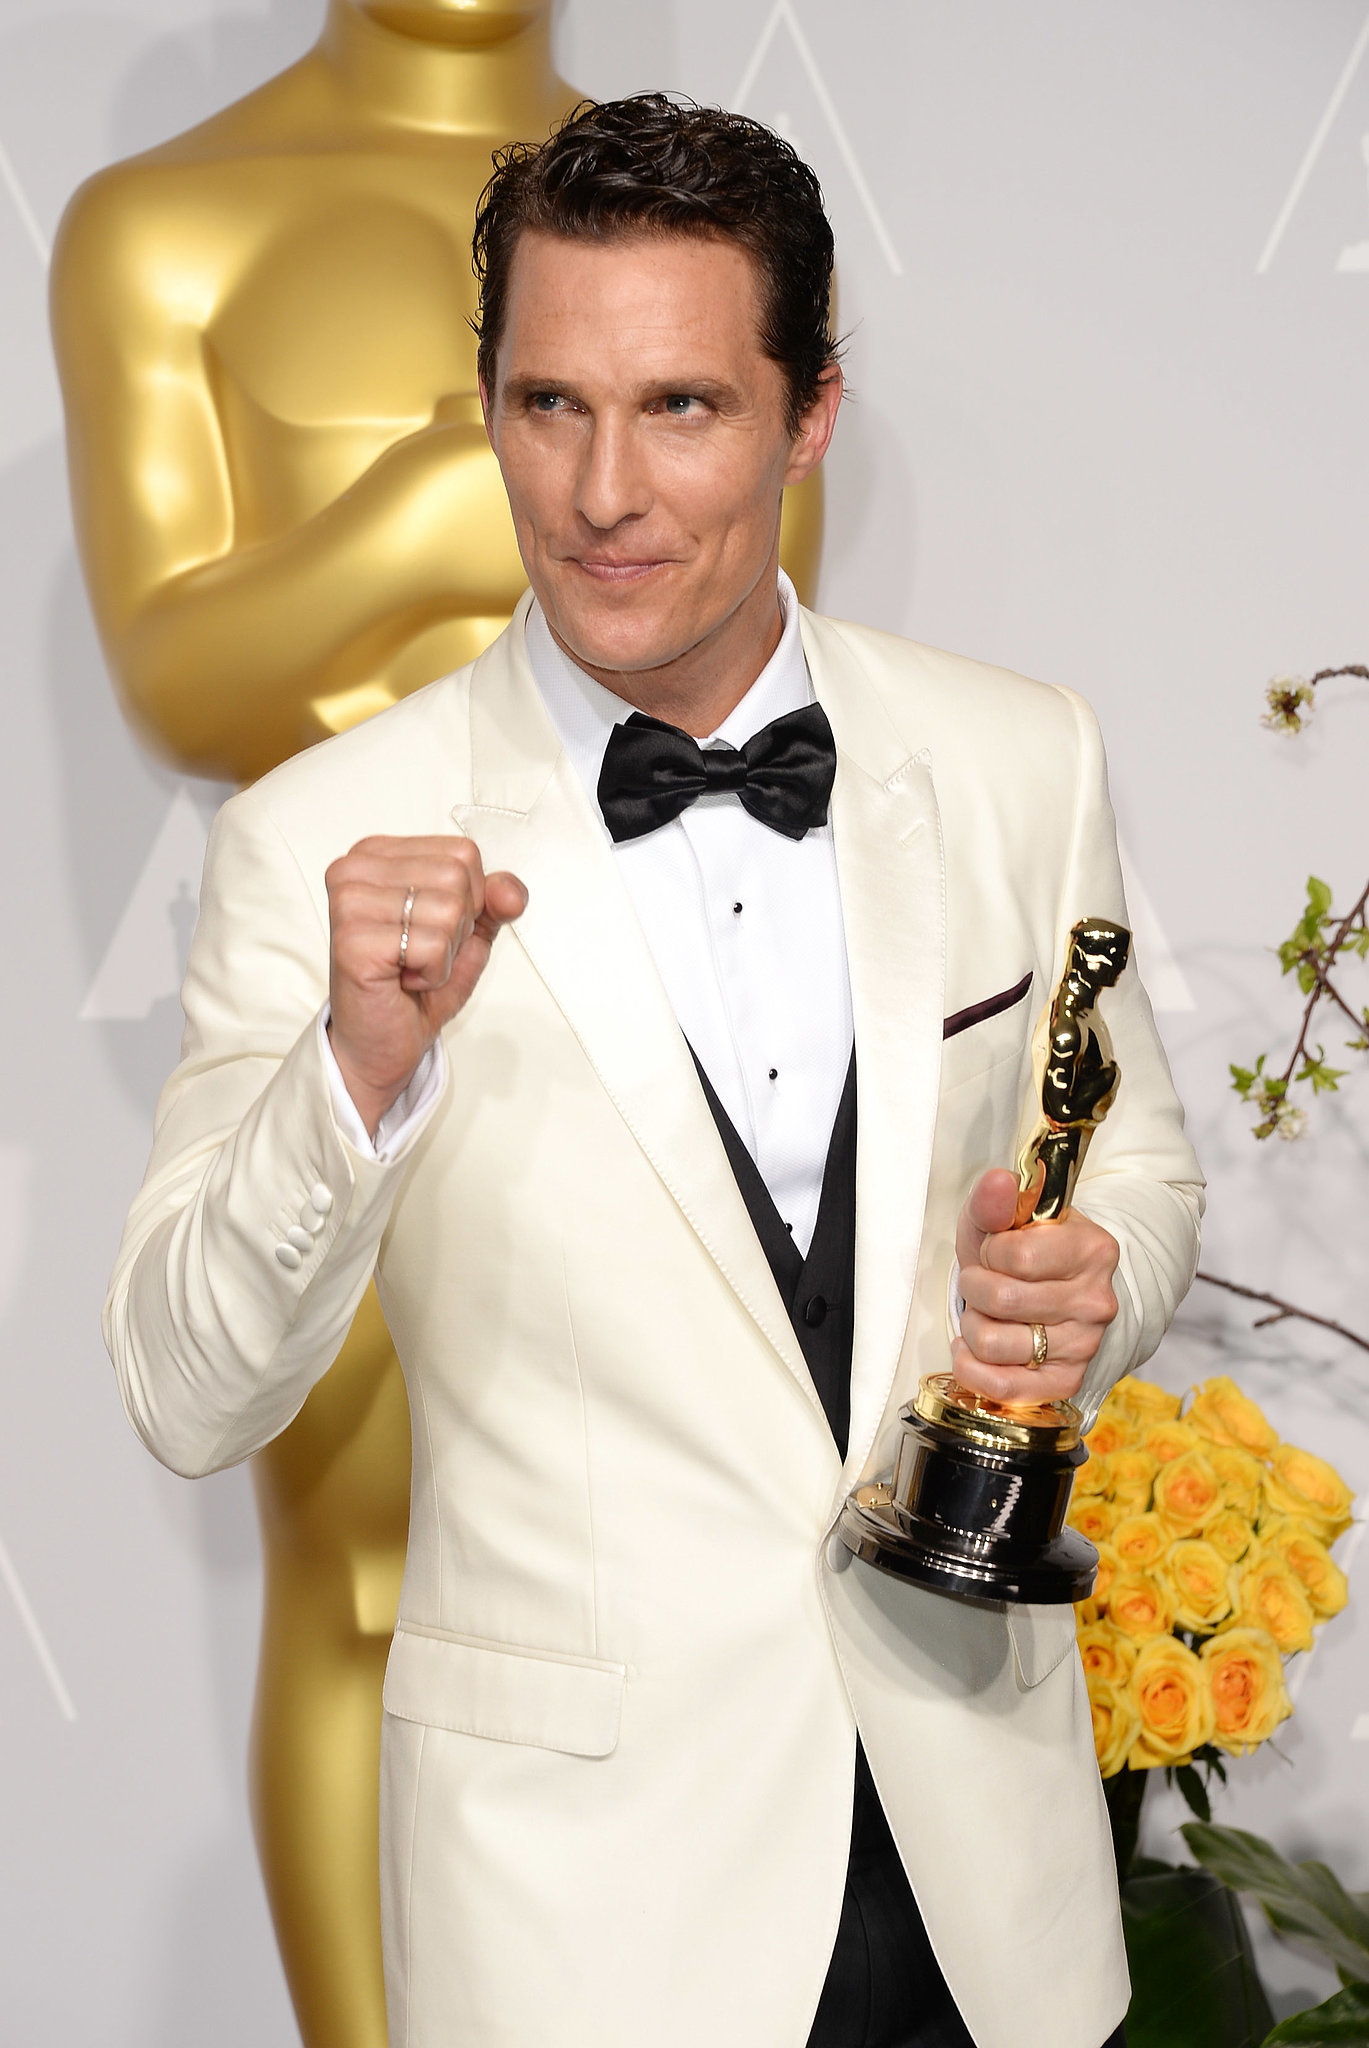 Matthew McConaughey looked dapper after his best actor win for Dallas Buyers Club.